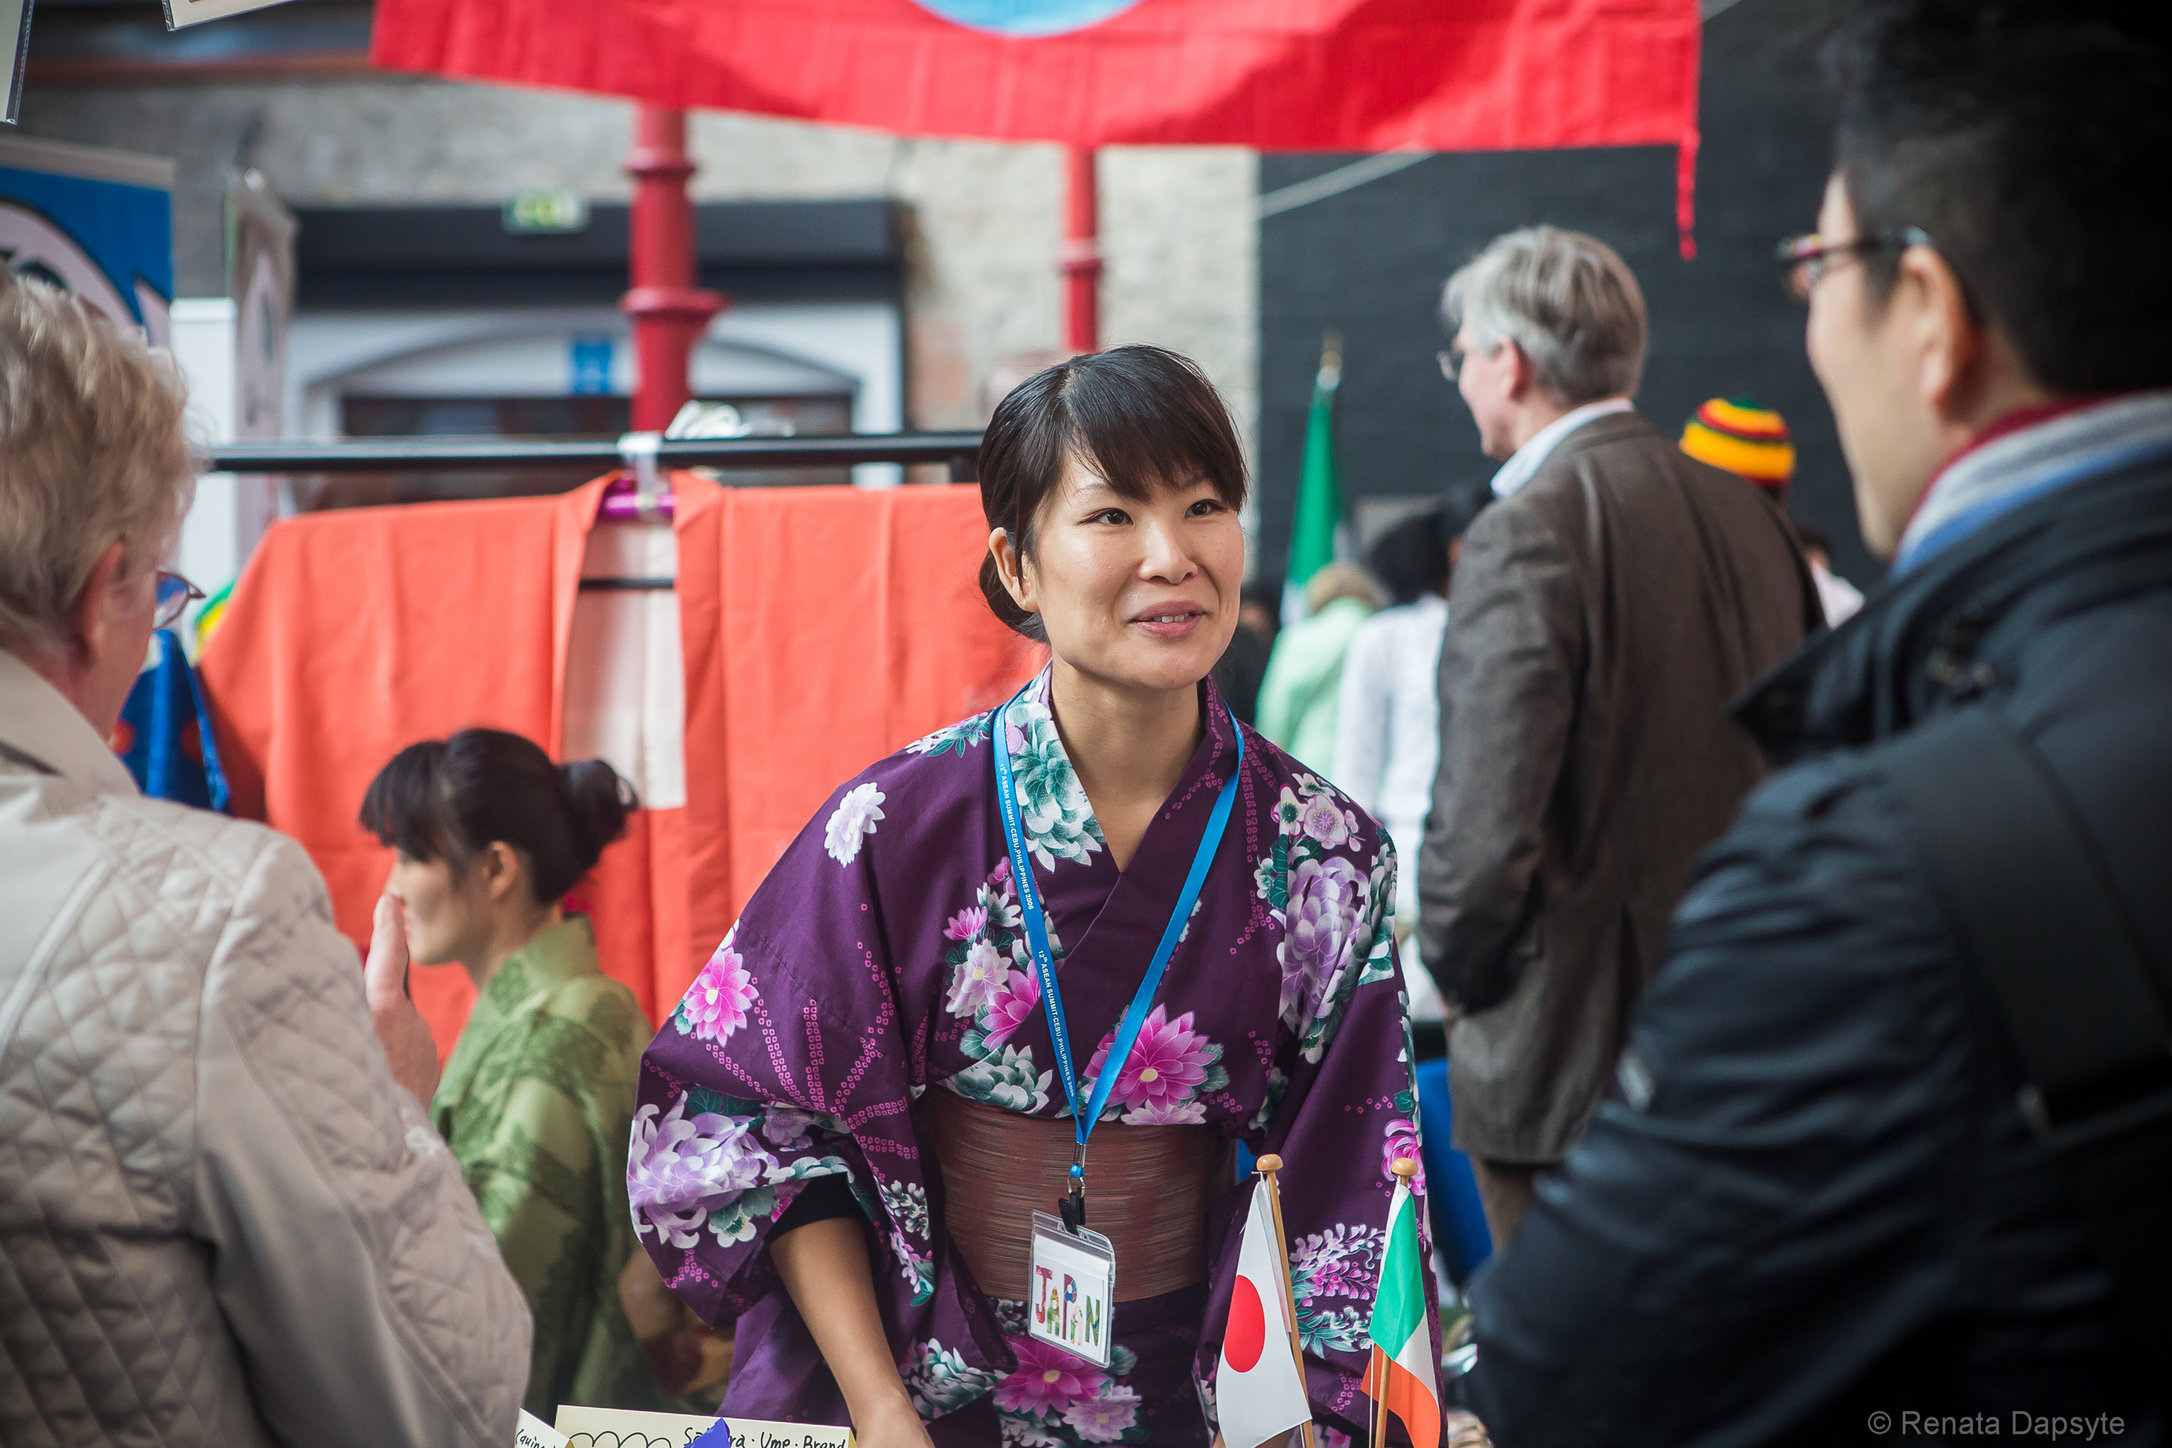 065_International Charity Bazaar Dublin 2013.JPG